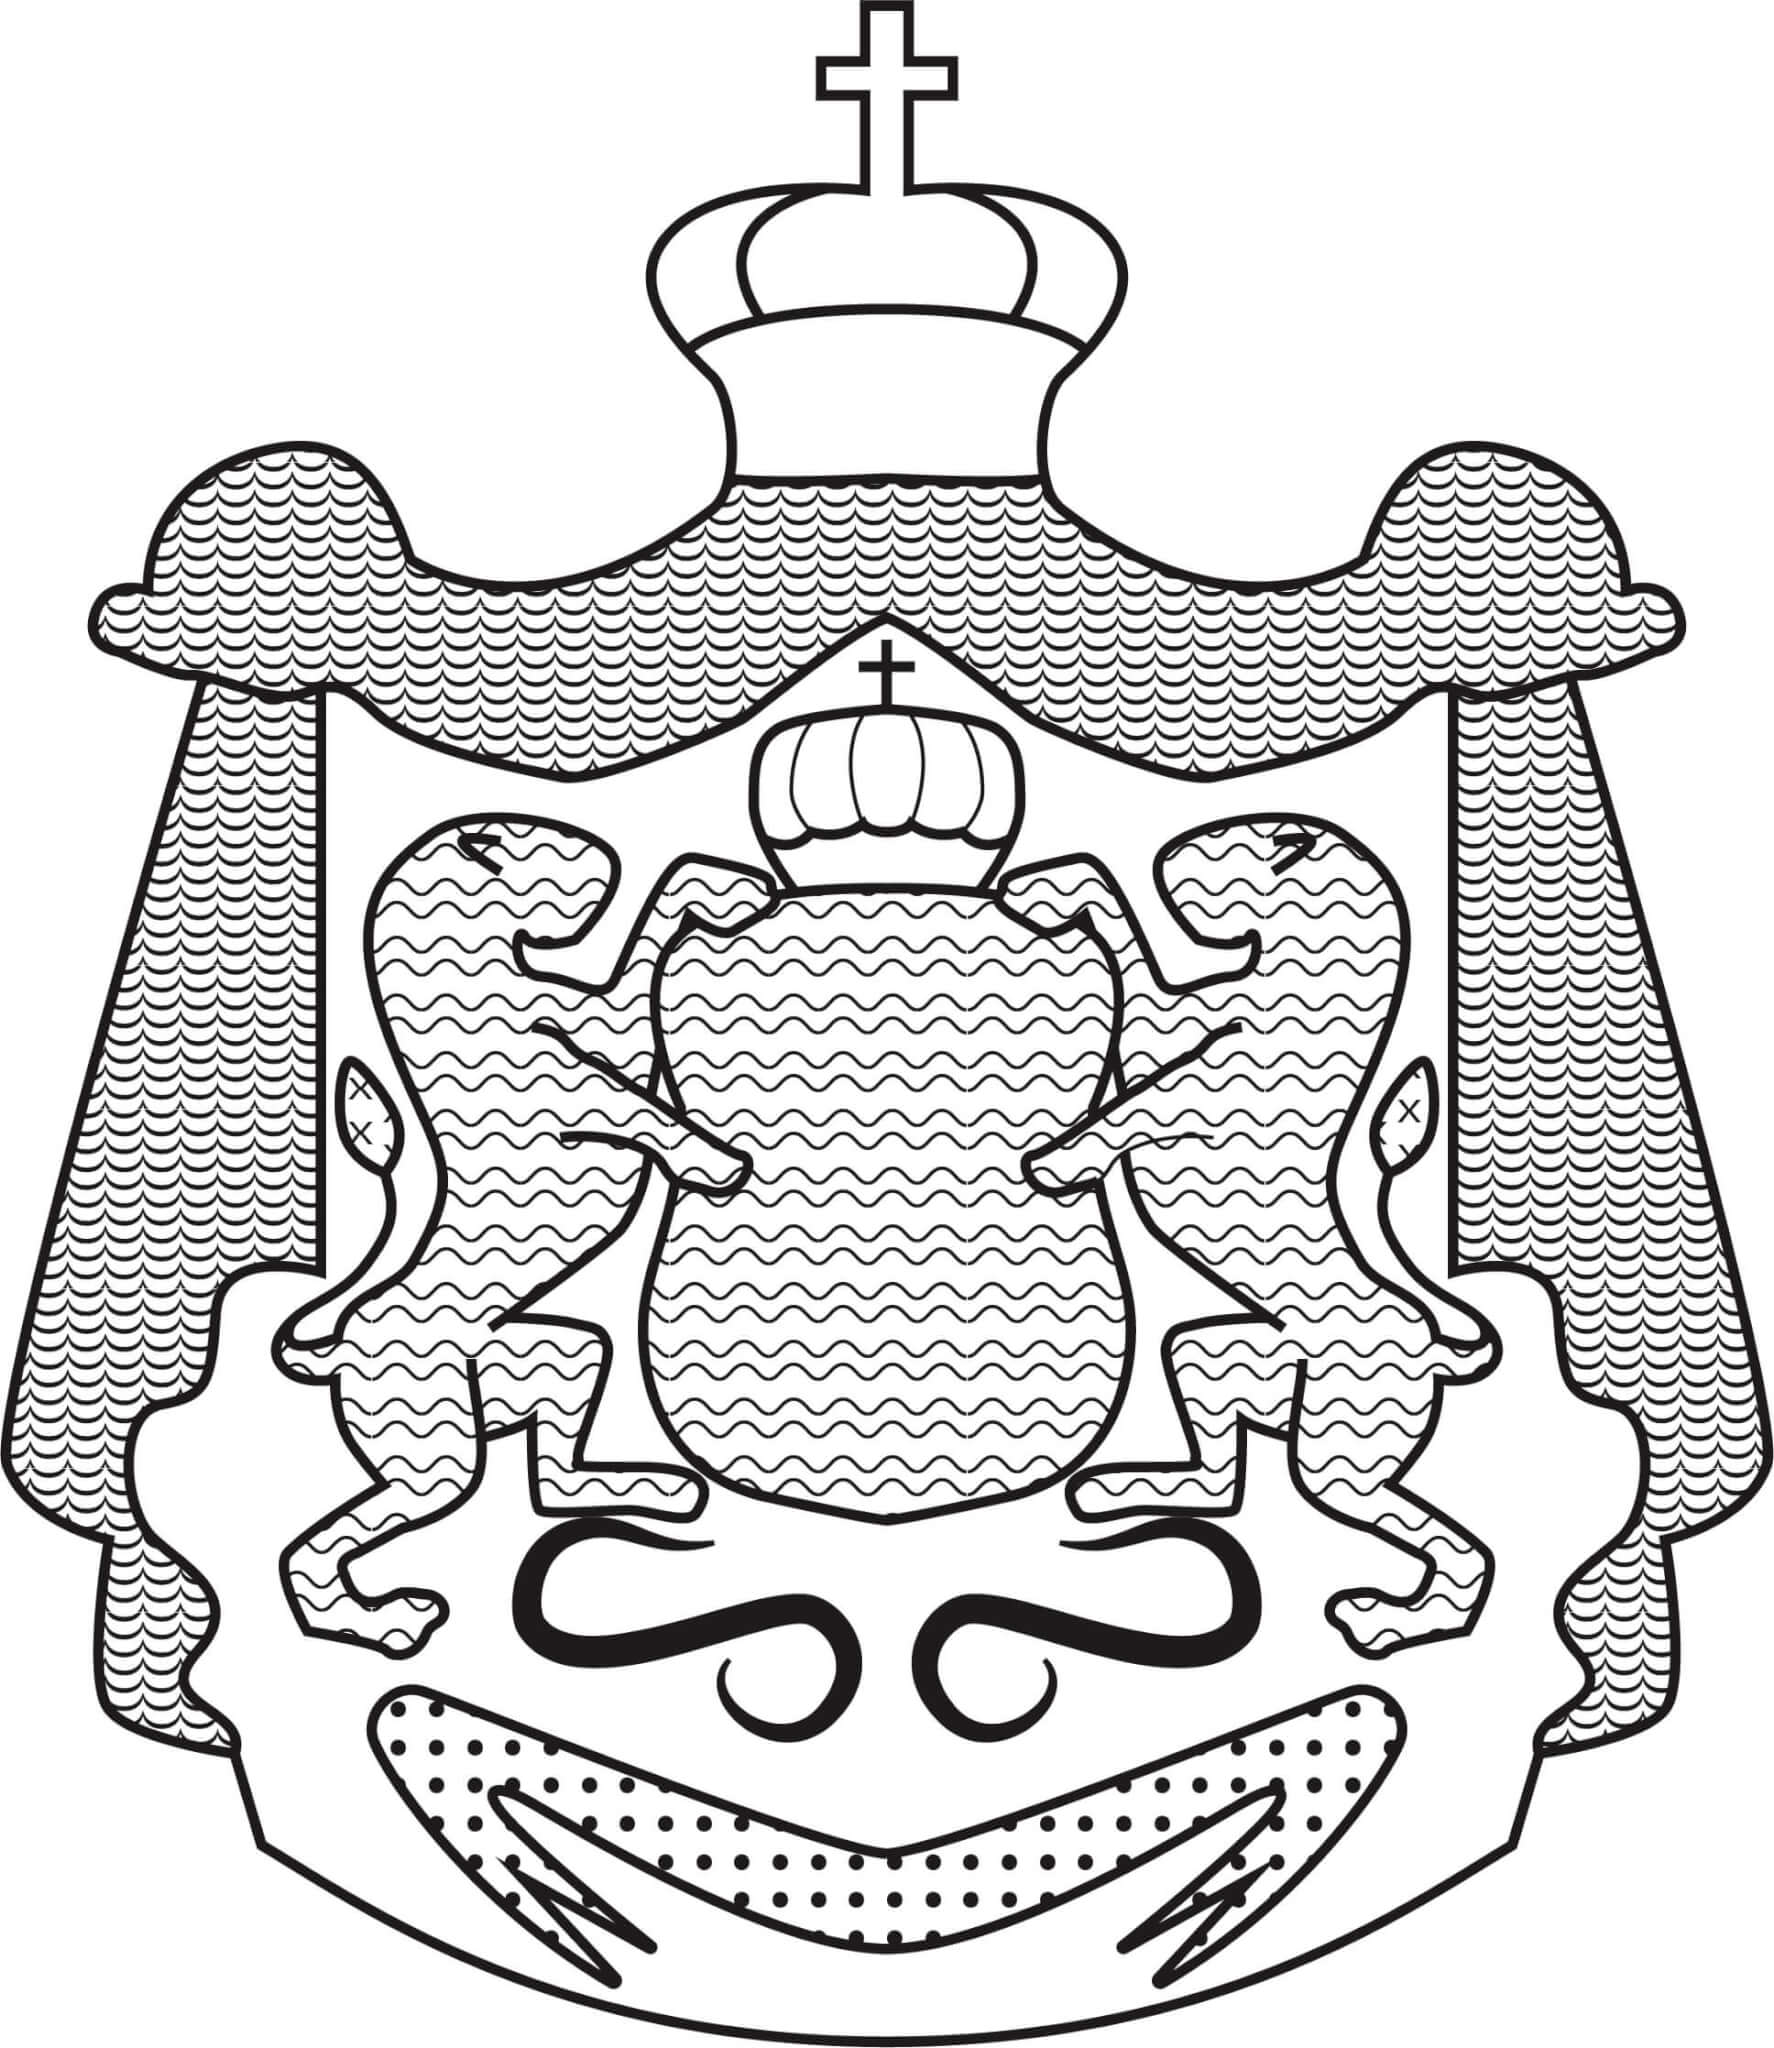 romania's coat of arms from 1921